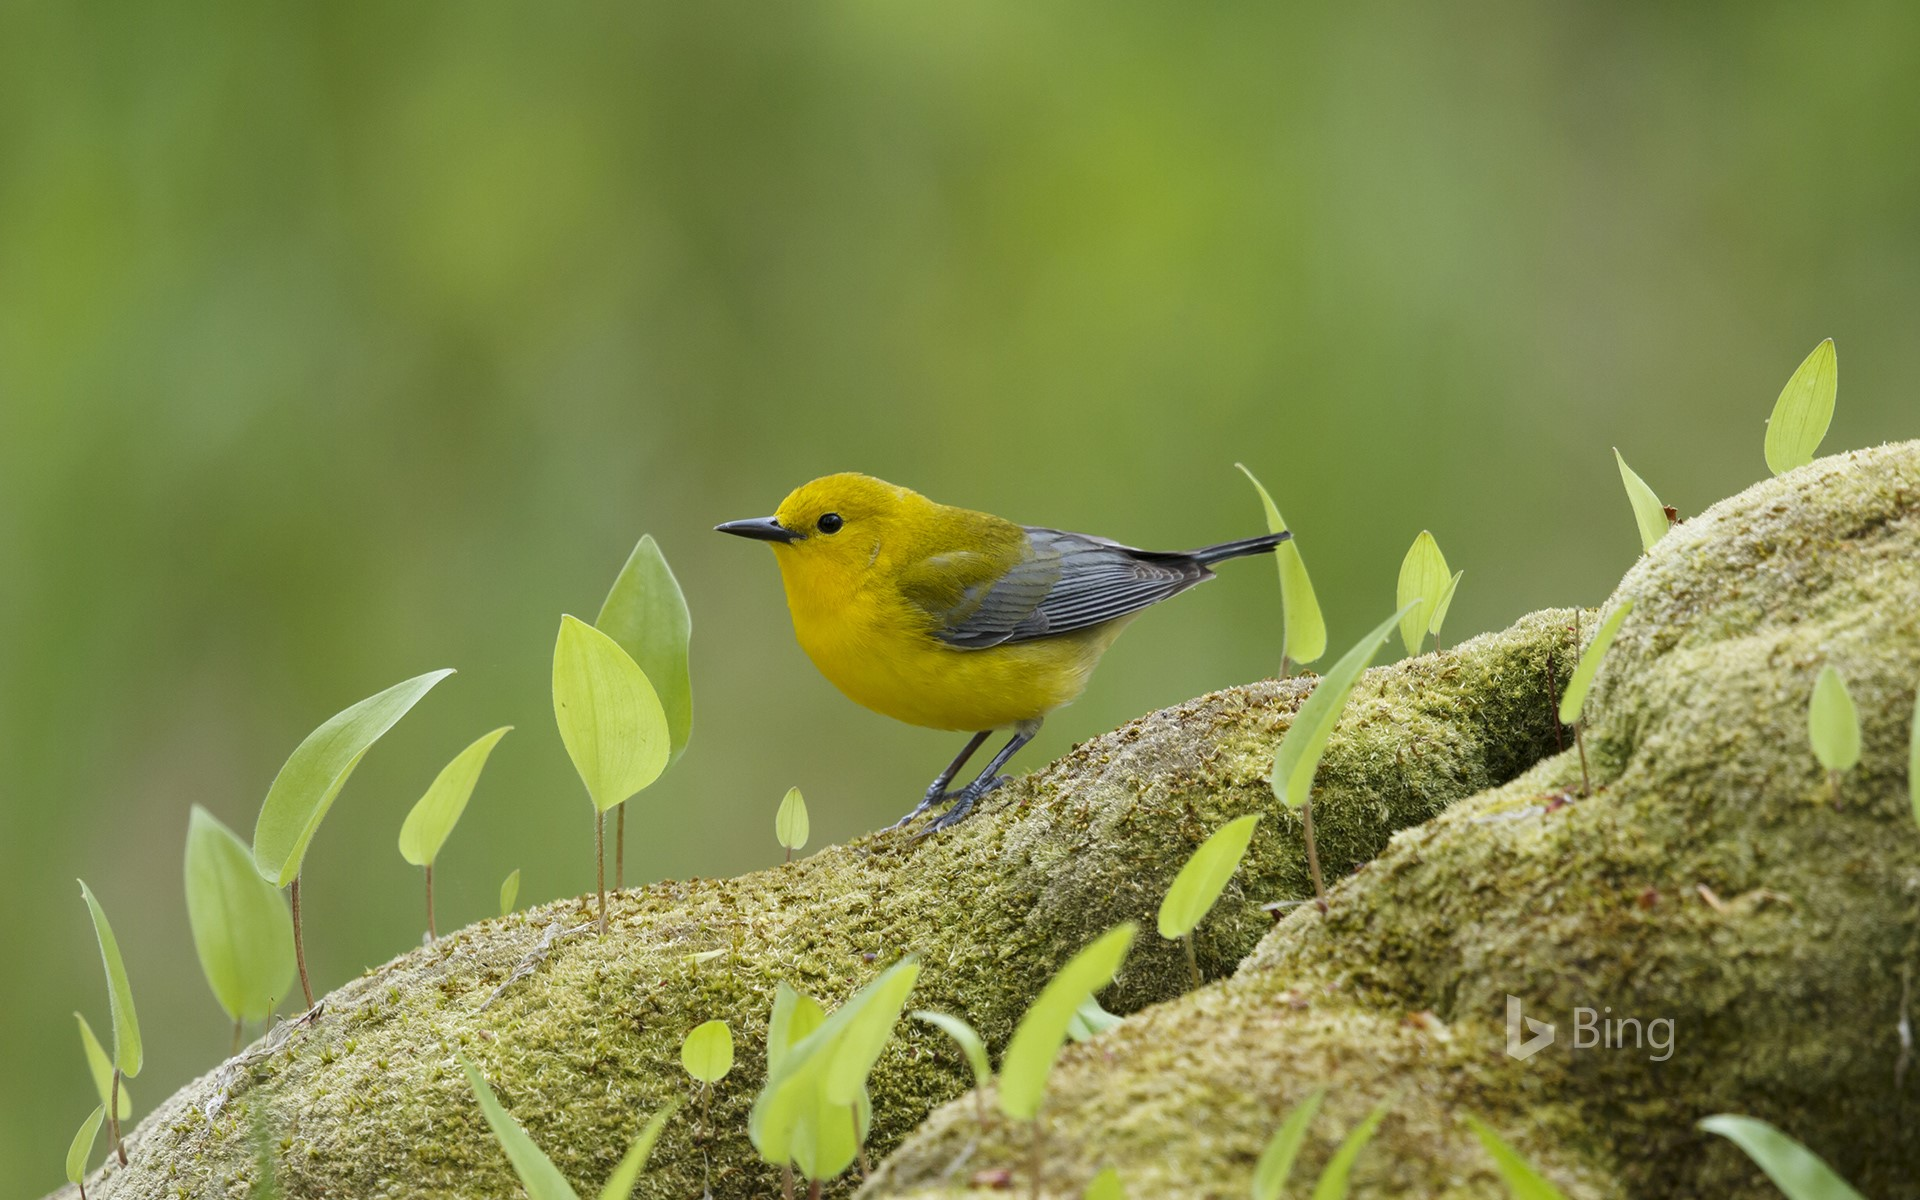 Prothonotary warbler in Ontario, Canada (© Bill Coster/Minden Pictures)